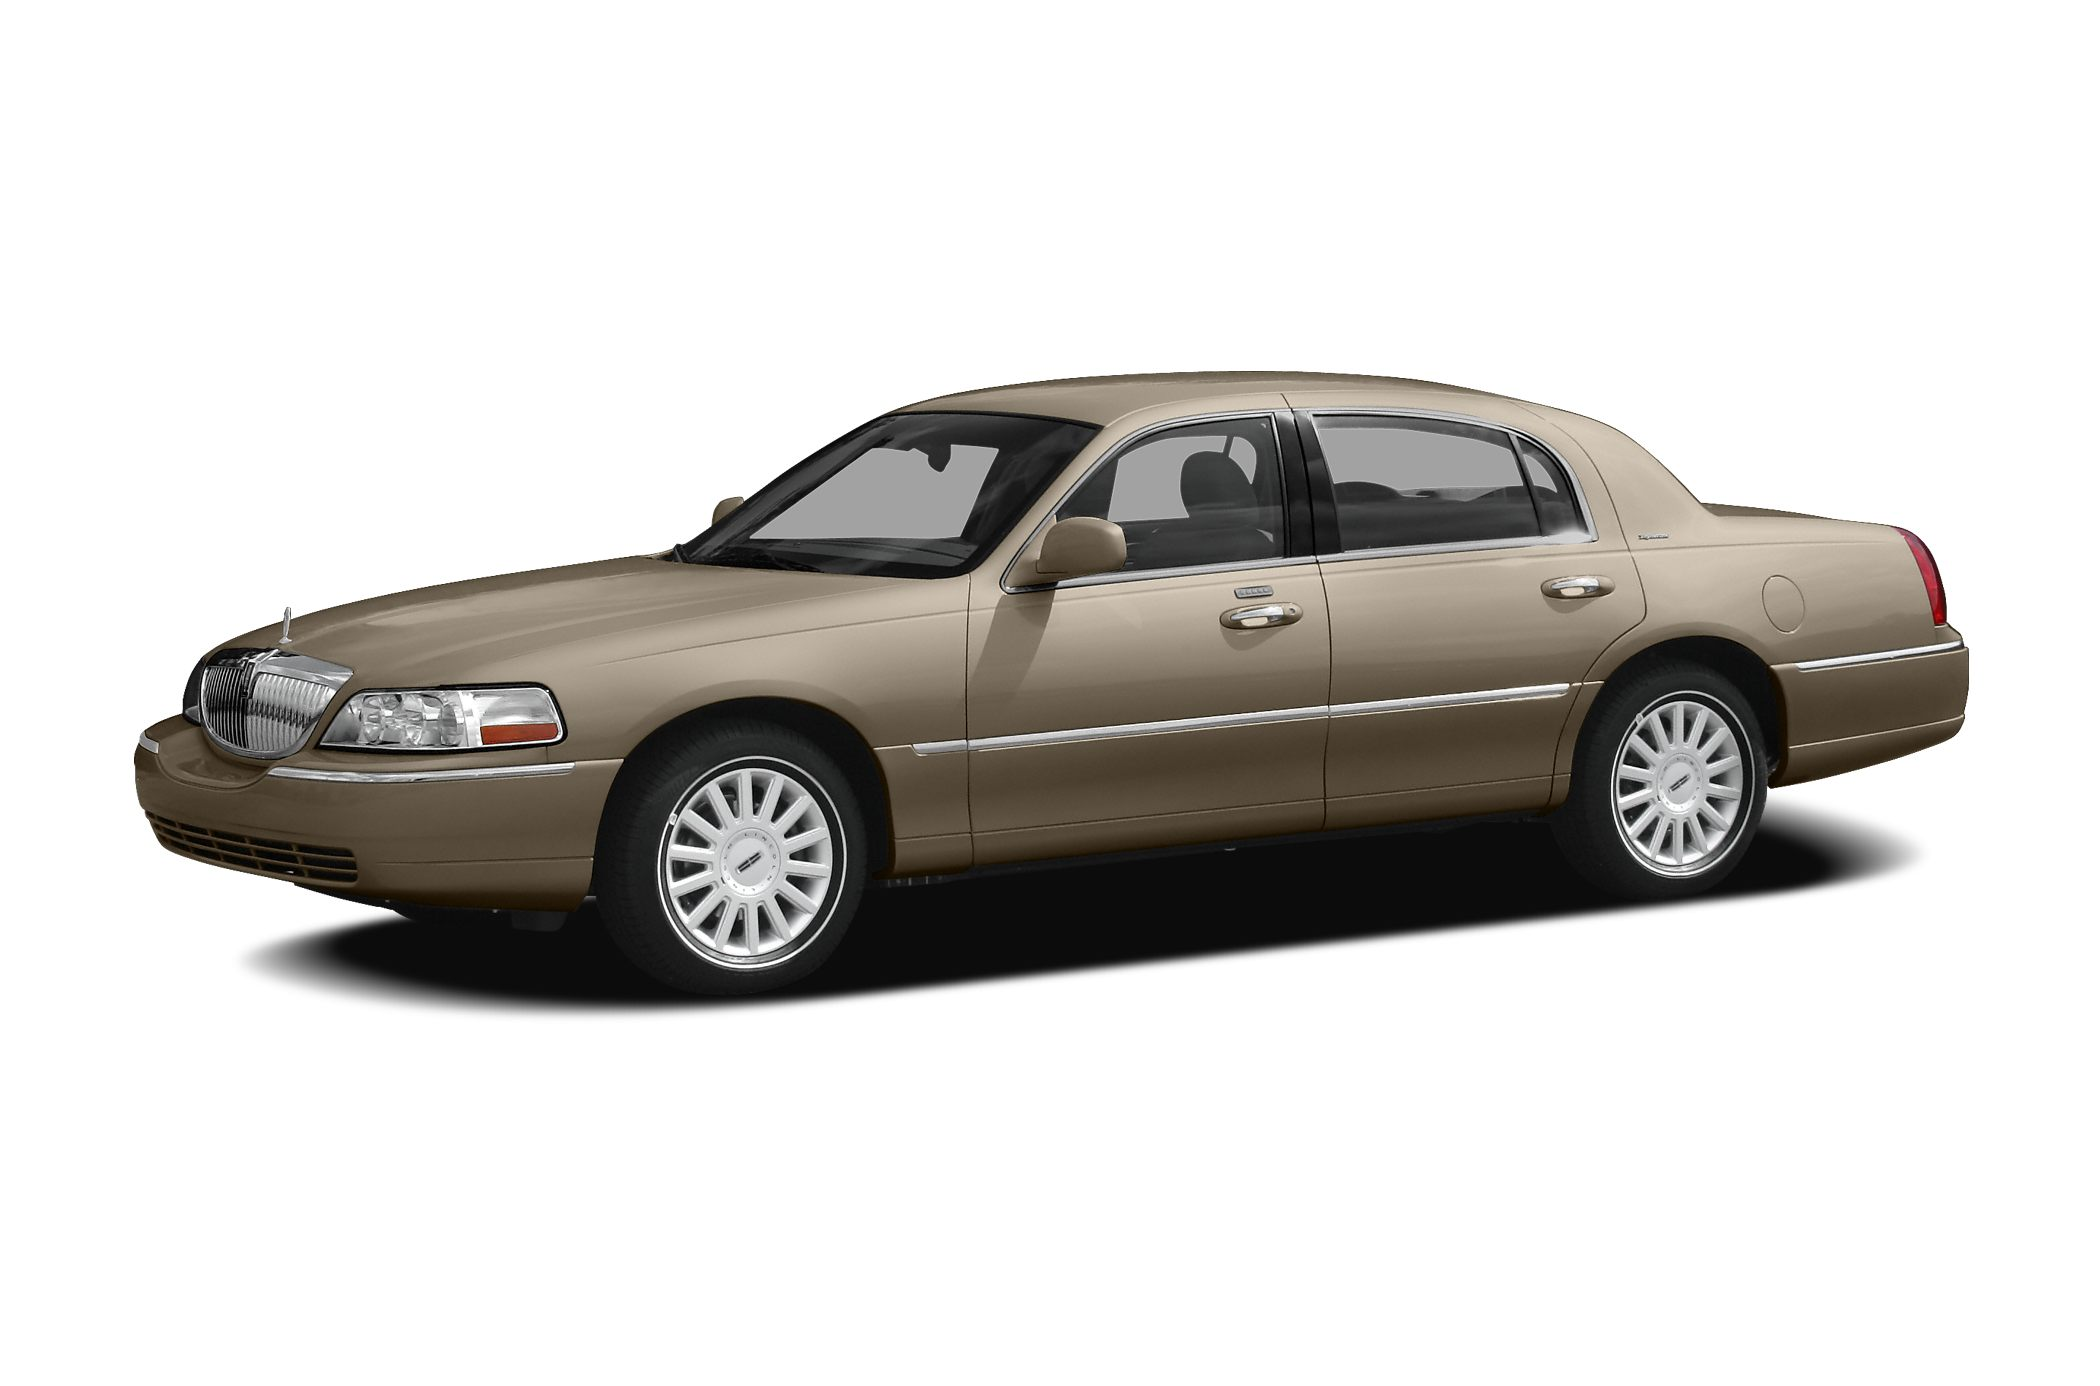 2011 Lincoln Town Car Signature Limited Sedan for sale in Rittman for $14,950 with 78,414 miles.